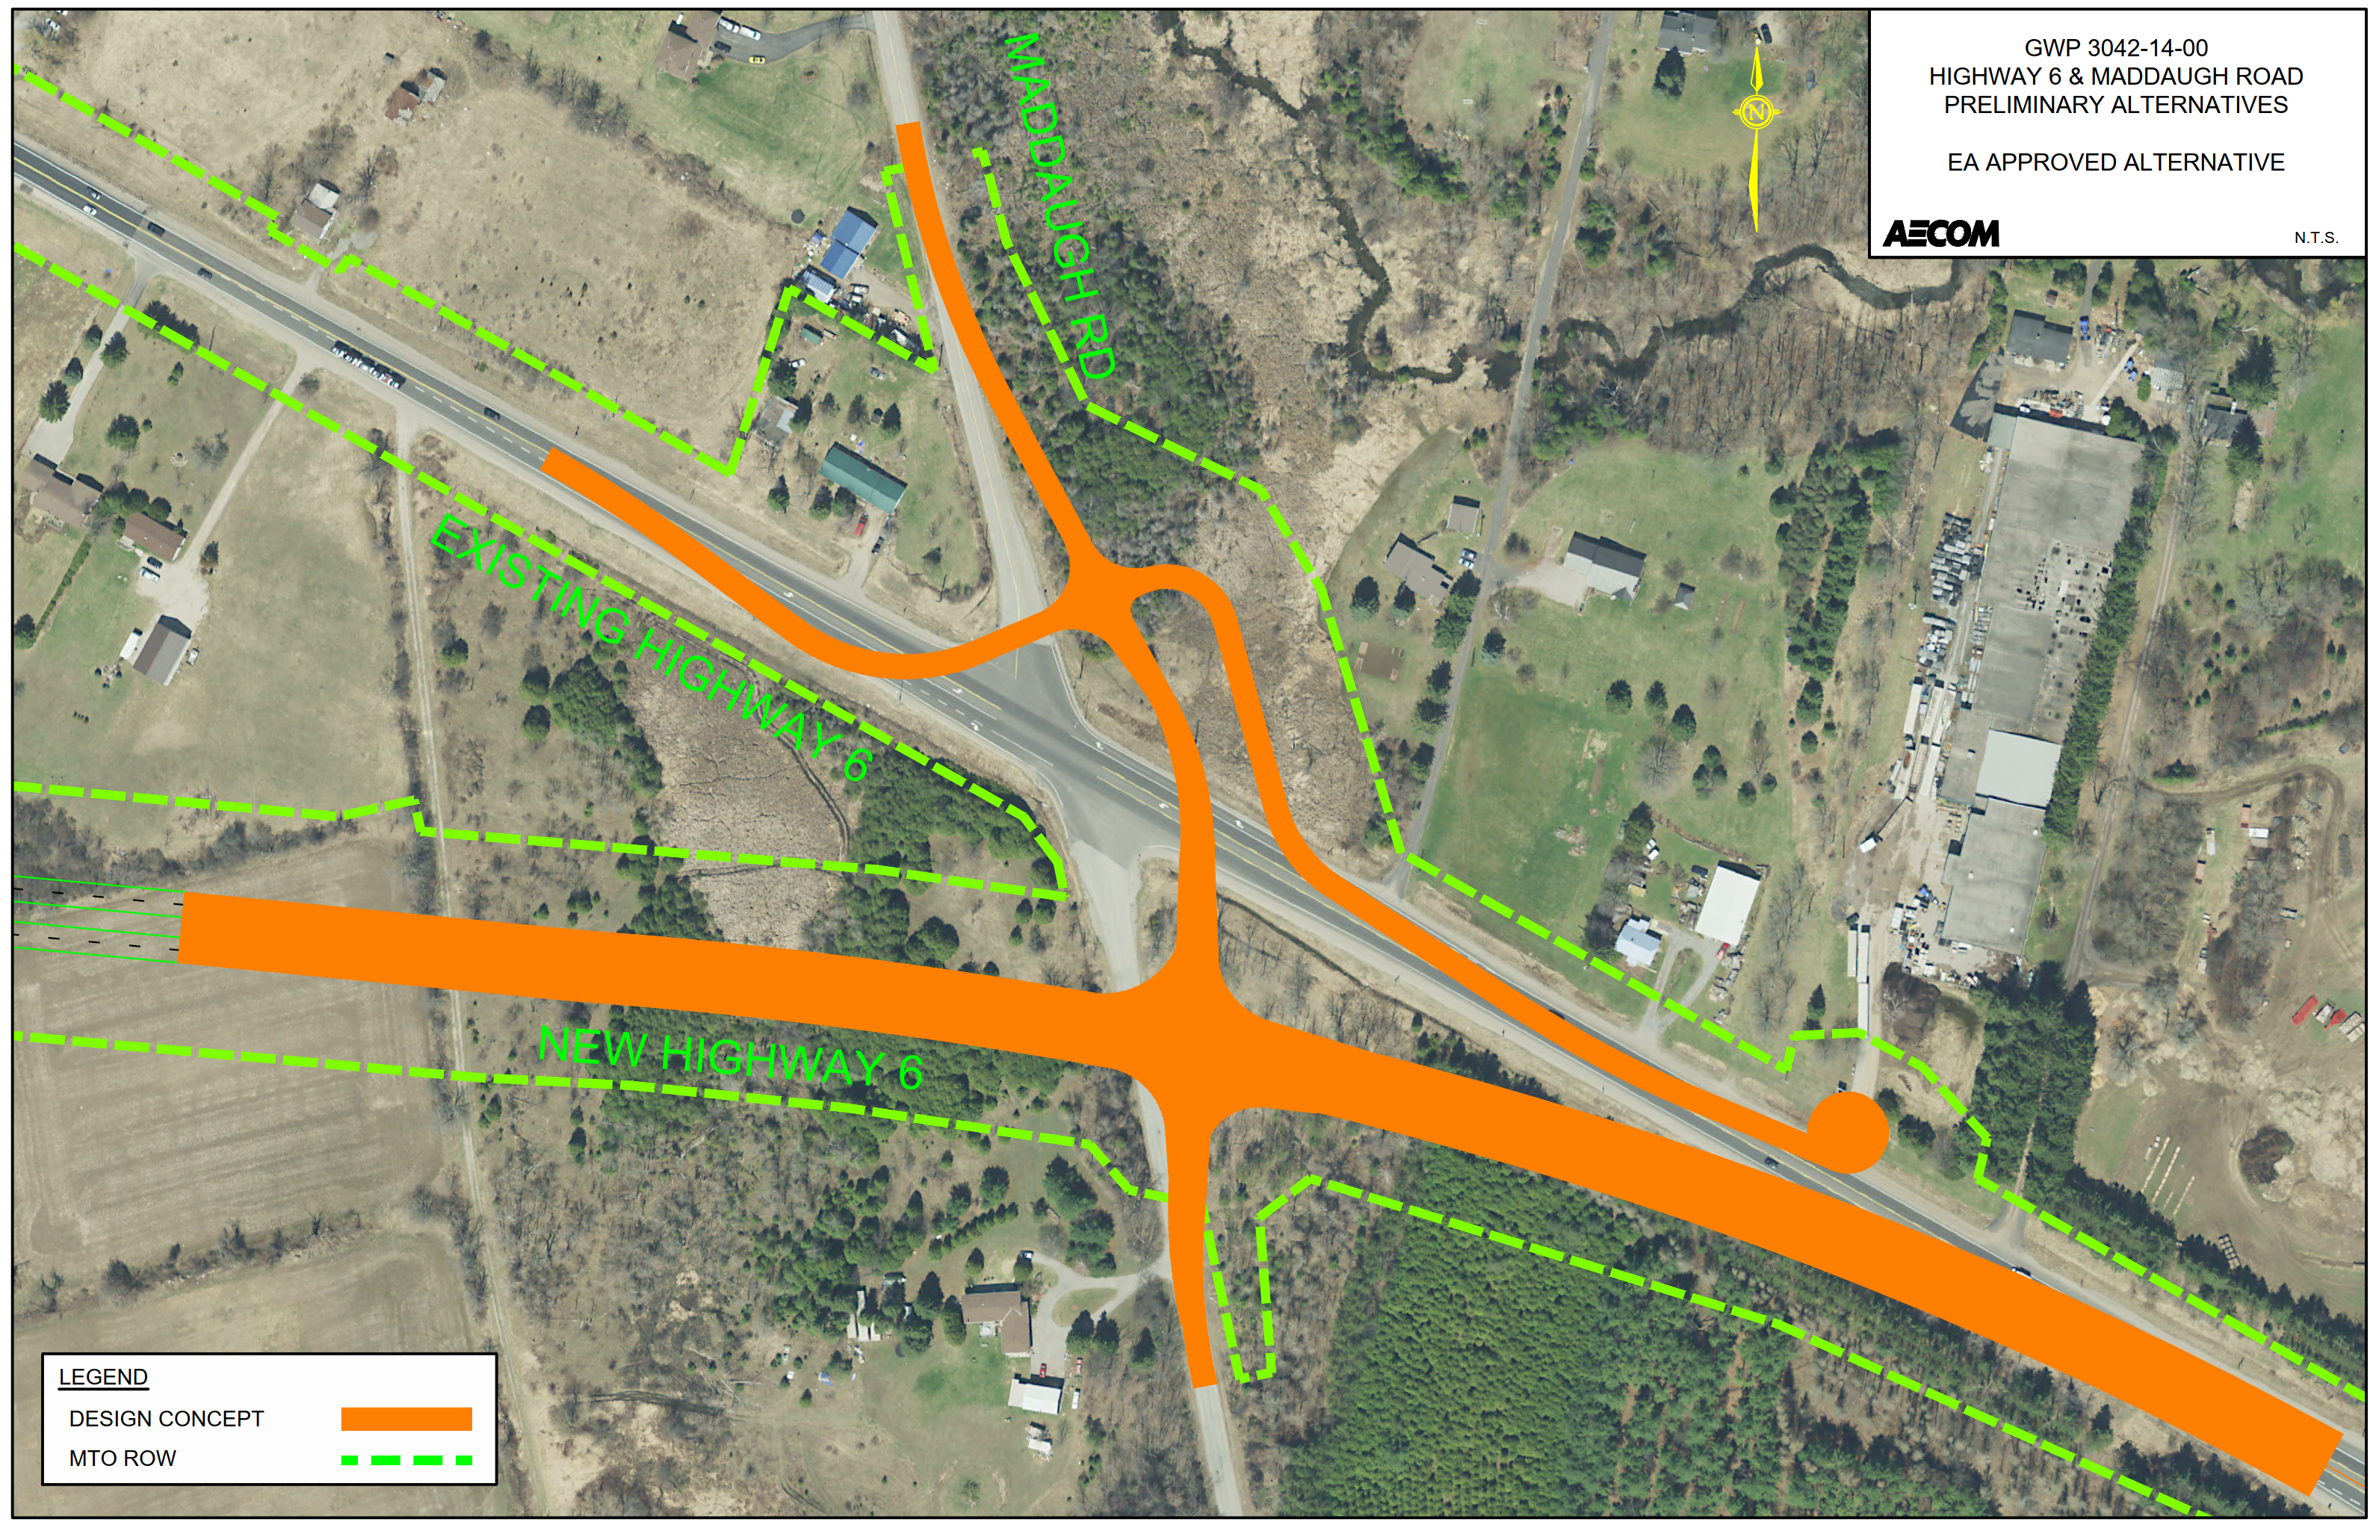 Aerial map displaying the approved EA configuration for Proposed Highway 6 and Maddaugh Road, including the design concept and the existing Right of Way.